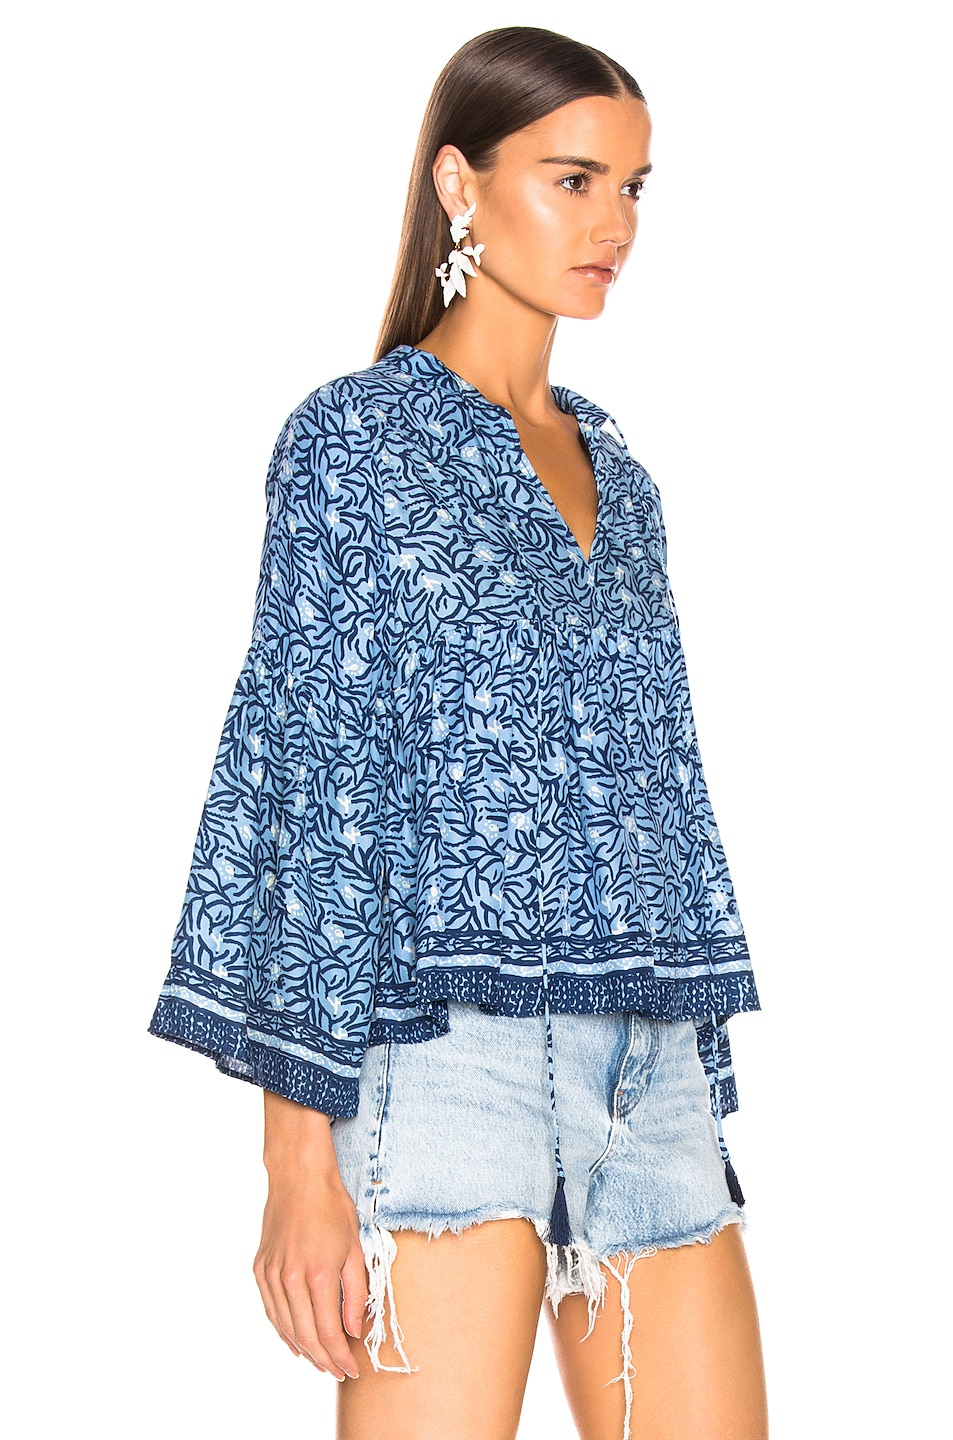 Image 2 of Natalie Martin Jerusha Top in Blue Coral